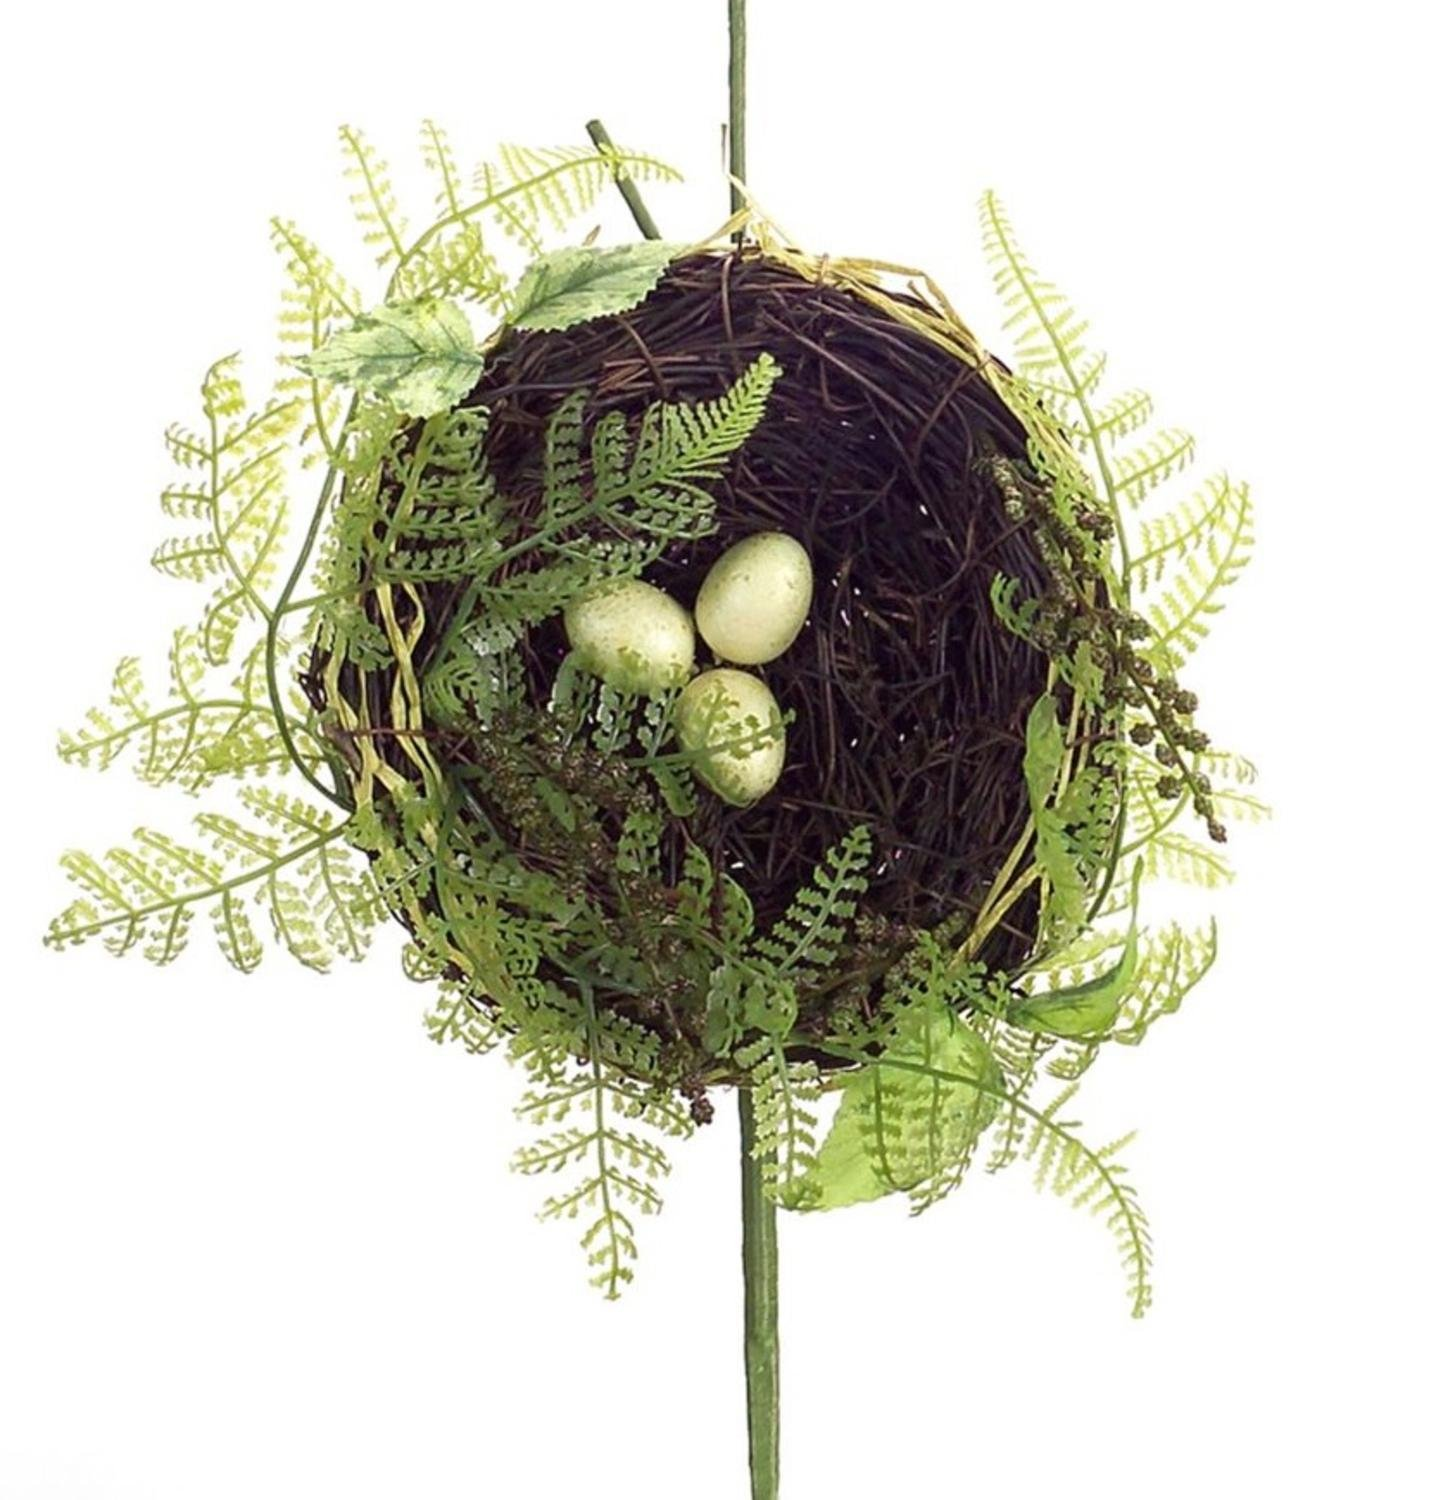 Pack of 6 Decorative Plastic Green and Brown Twig Bird Nest Pick